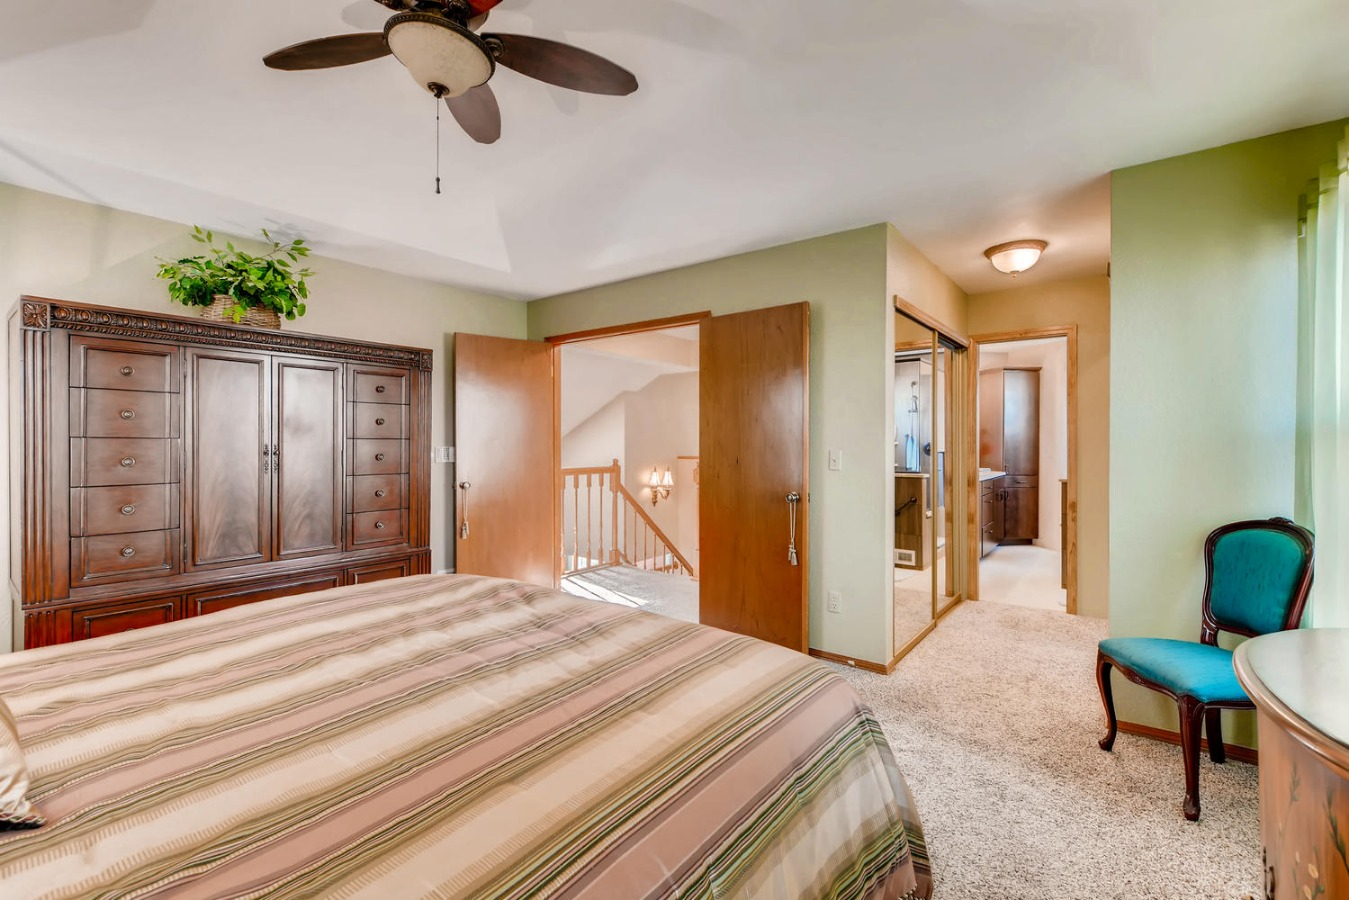 Master Suite - Get Away without going away